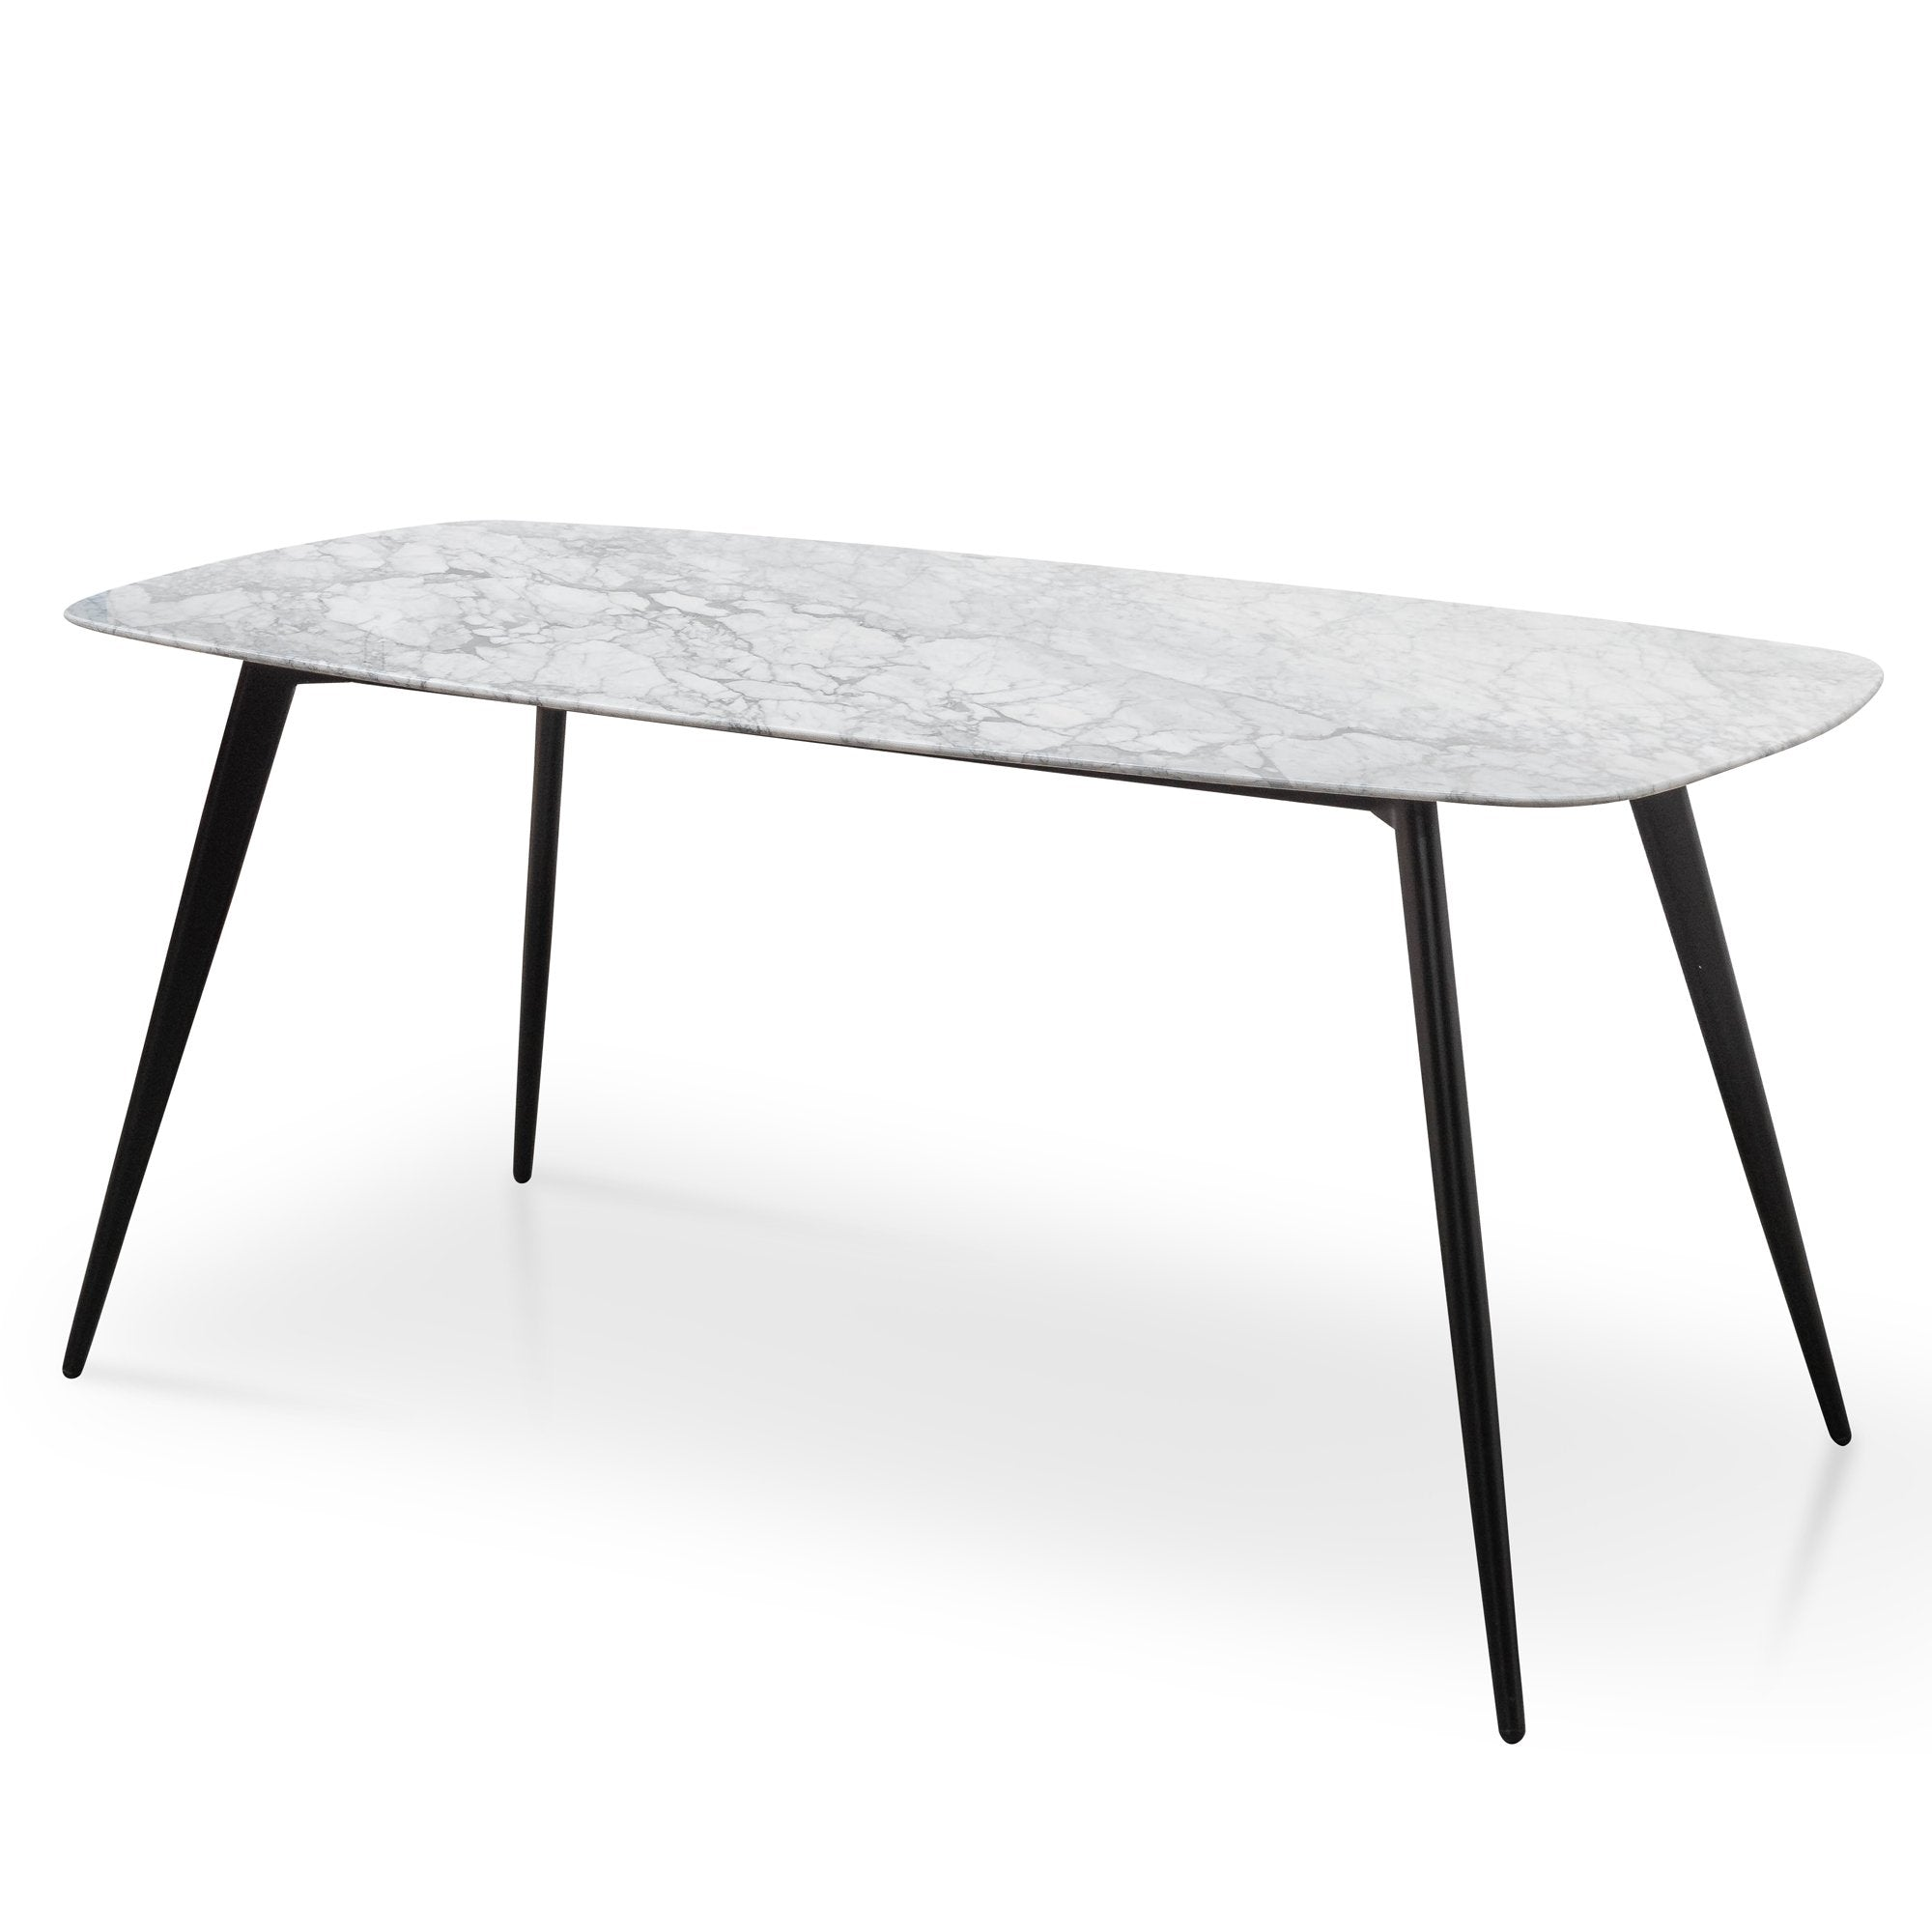 Maxwell 1 8m White Marble Dining Table Black Legs Interior Secrets